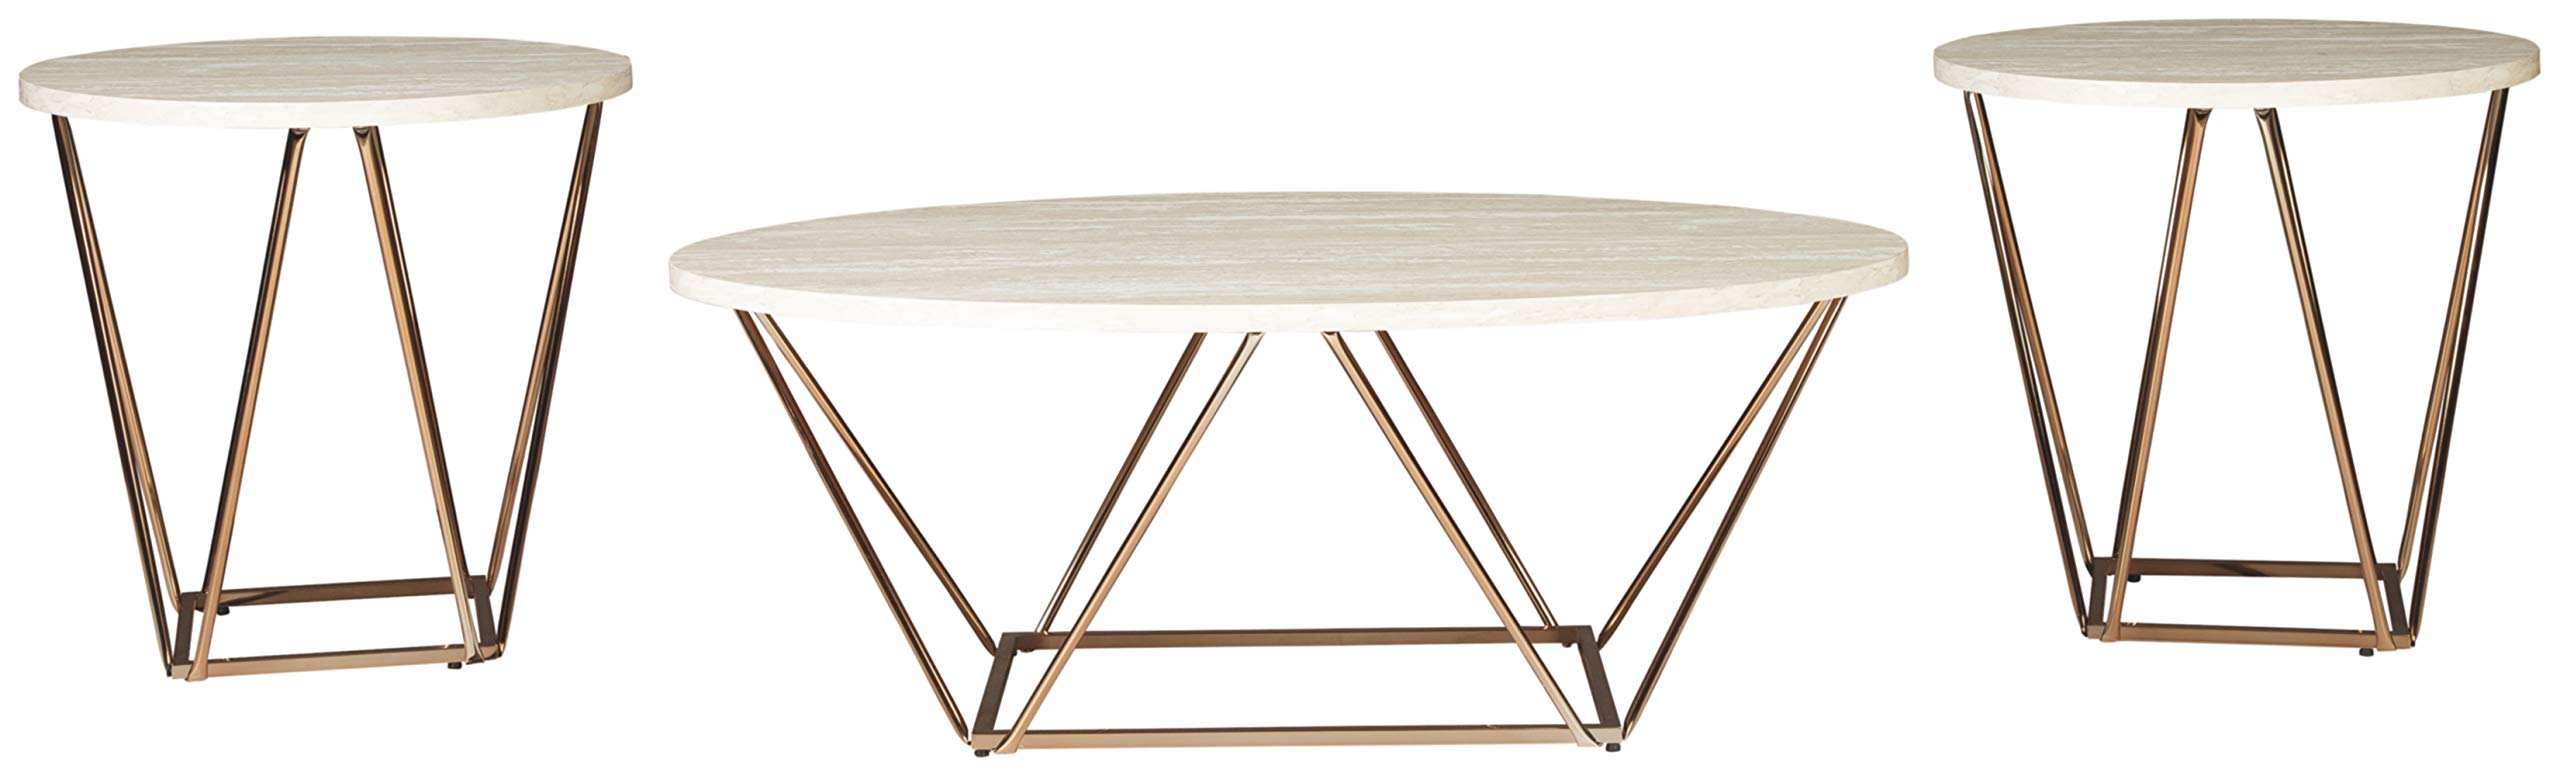 Signature Design by Ashley Tarica 3-IN-1 TABLE, Two-tone by Signature Design by Ashley